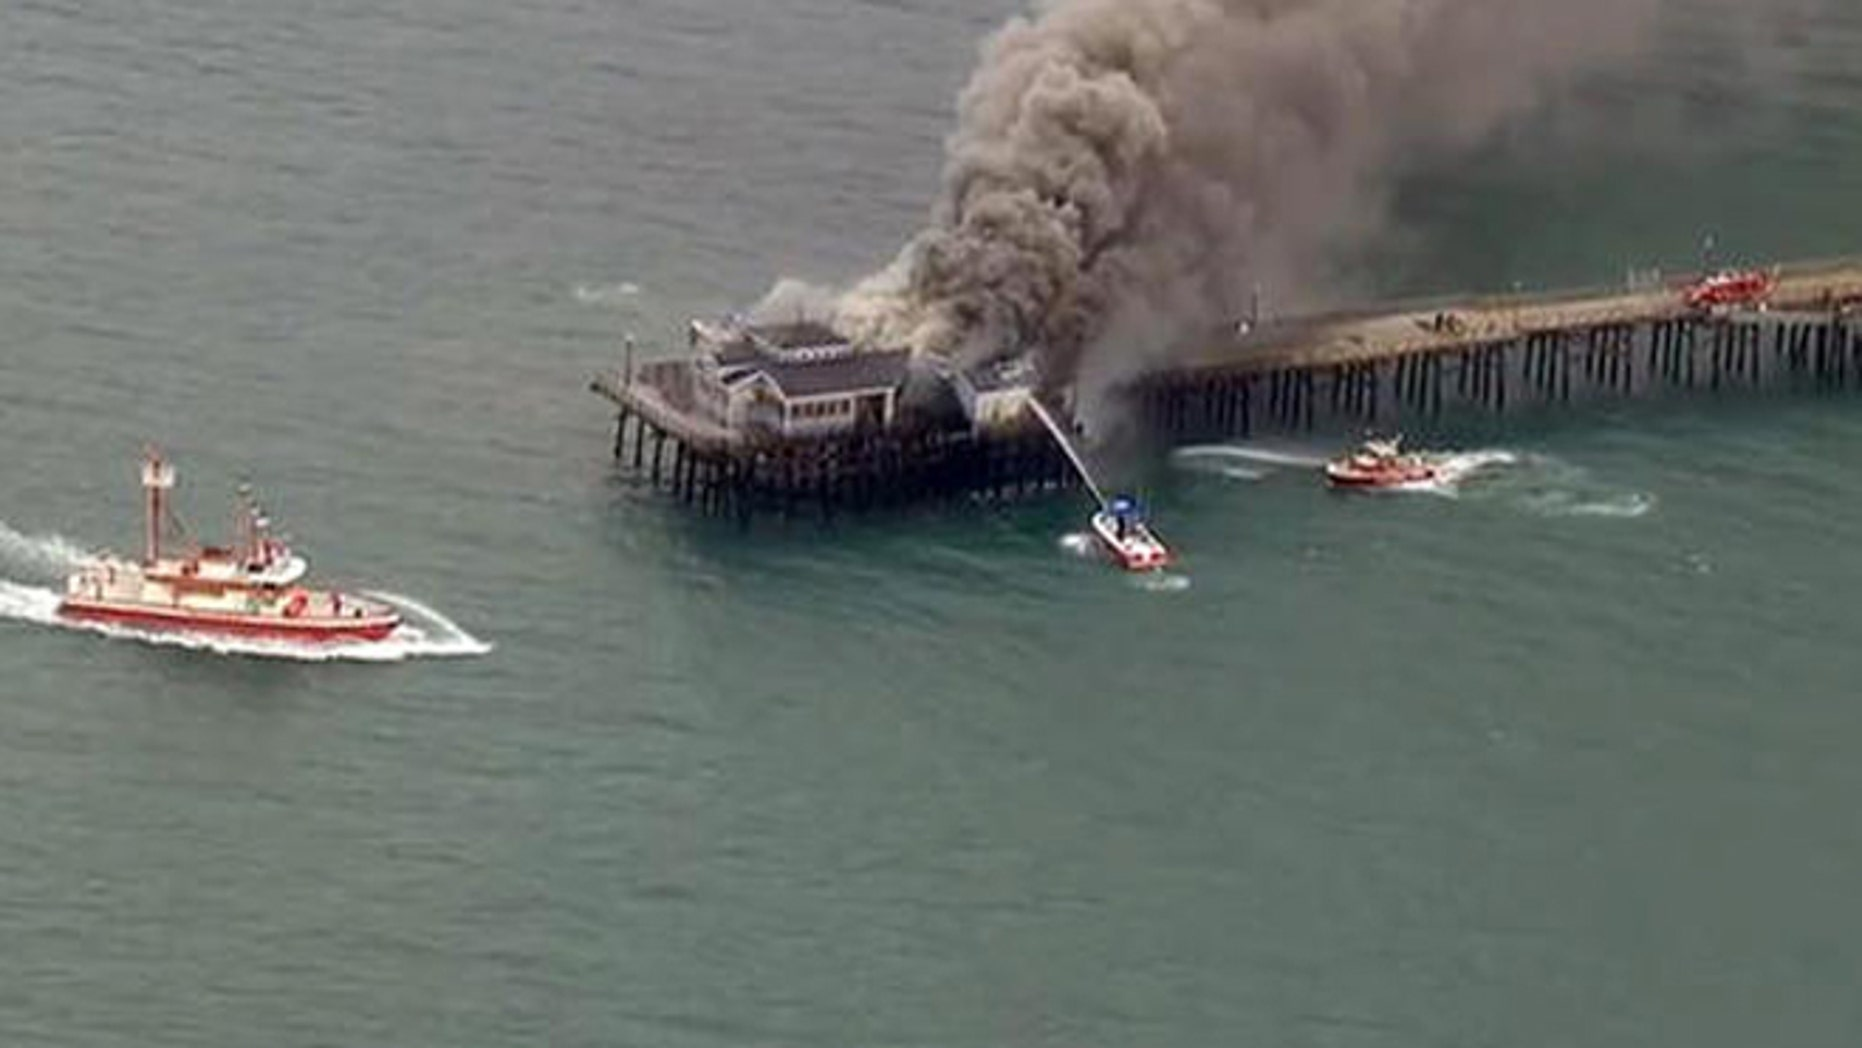 Firefighters attack a fire on the Seal Beach pier in Seal Beach, Calif. on Friday, May 20, 2016. (KABC-TV via AP)